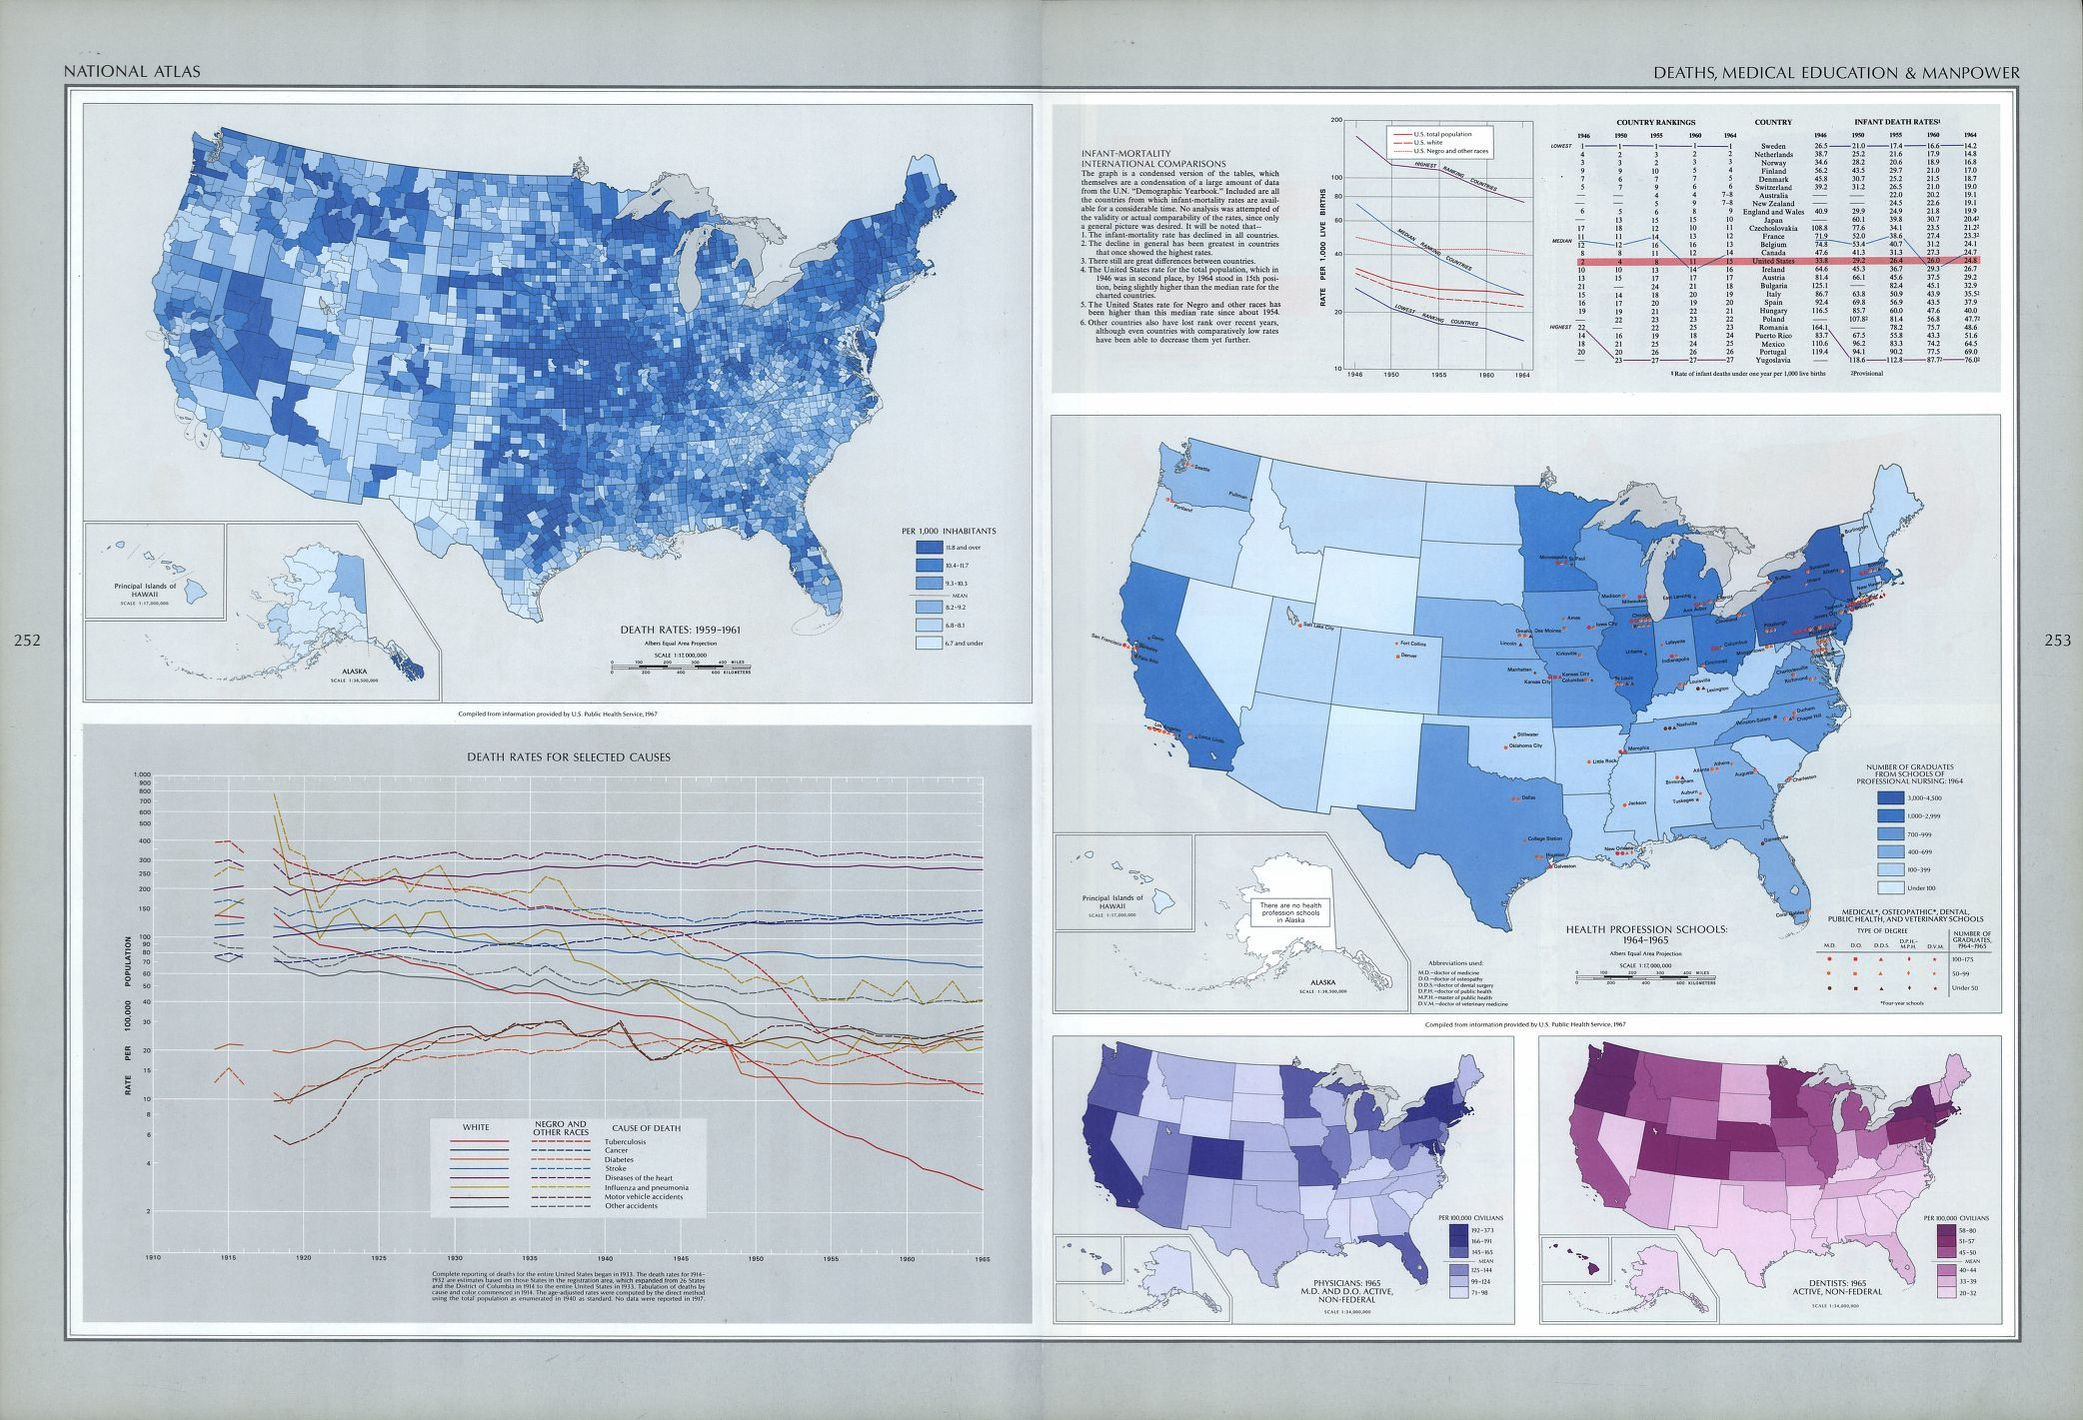 Geological Survey, U.S, and Arch C Gerlach. The national atlas of the United States of America. Washington, 1970. Plate show mortality and distribution of medical professionals by state.